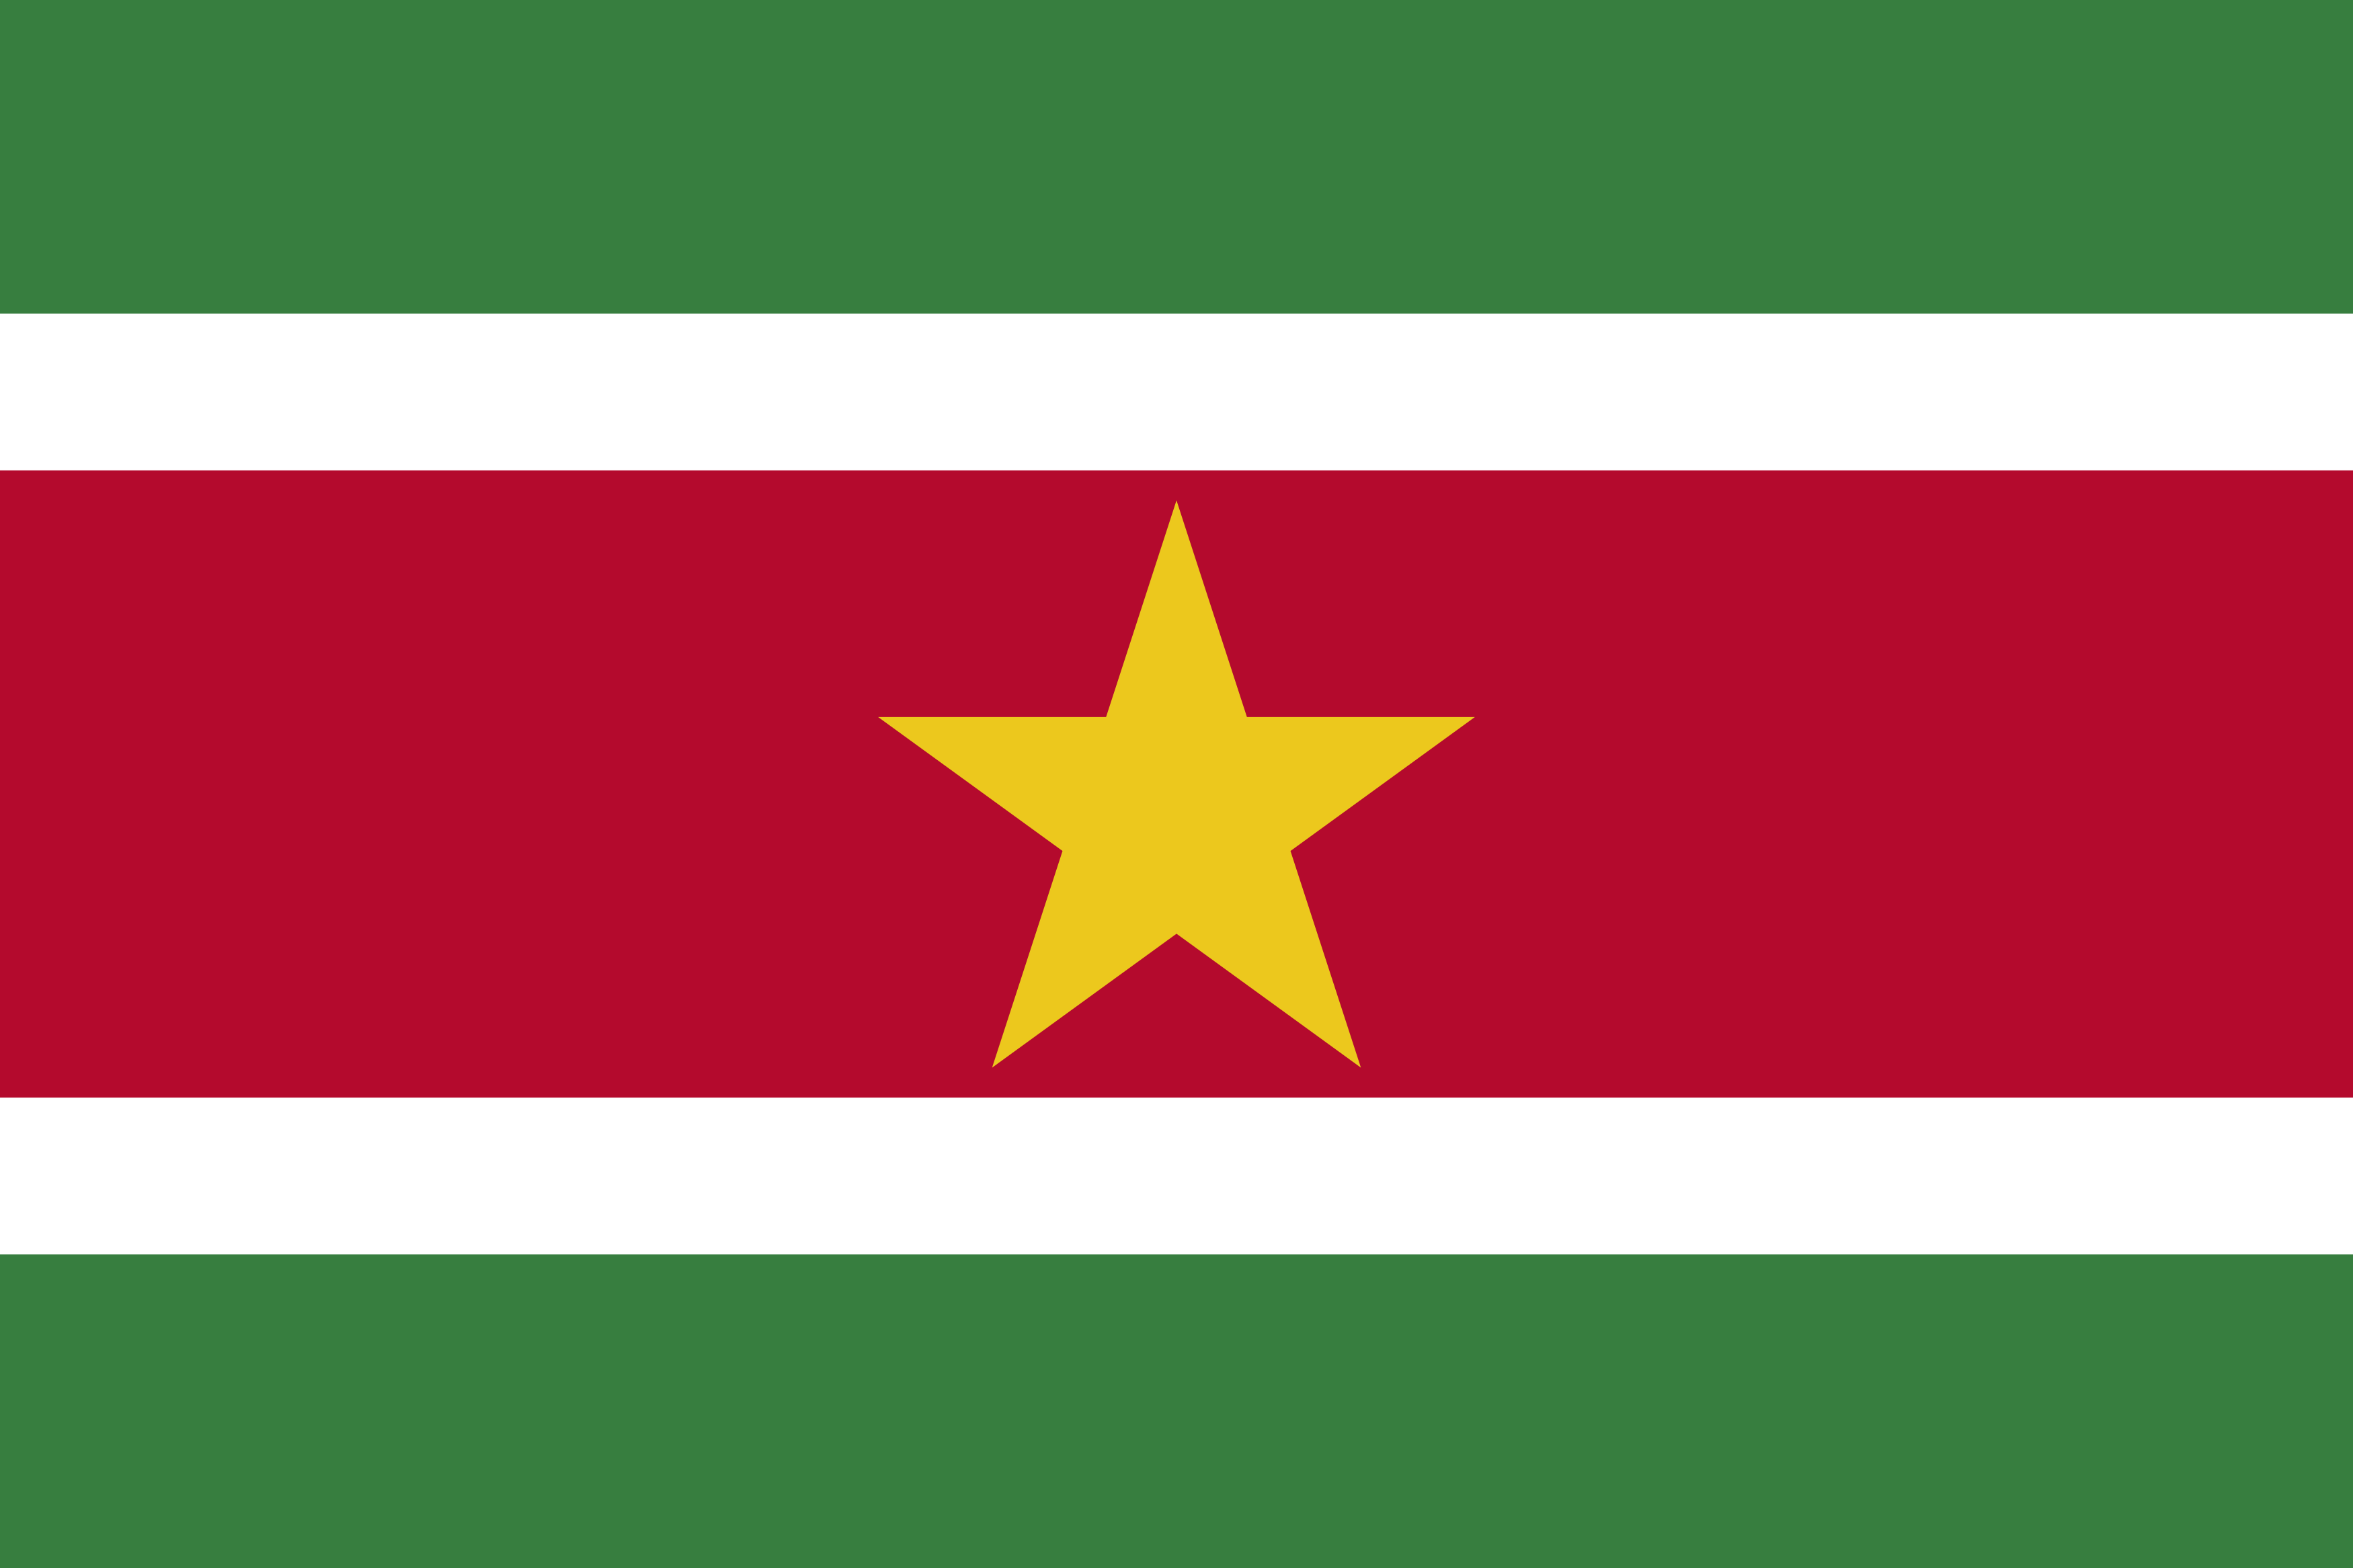 Bandeira do Suriname.